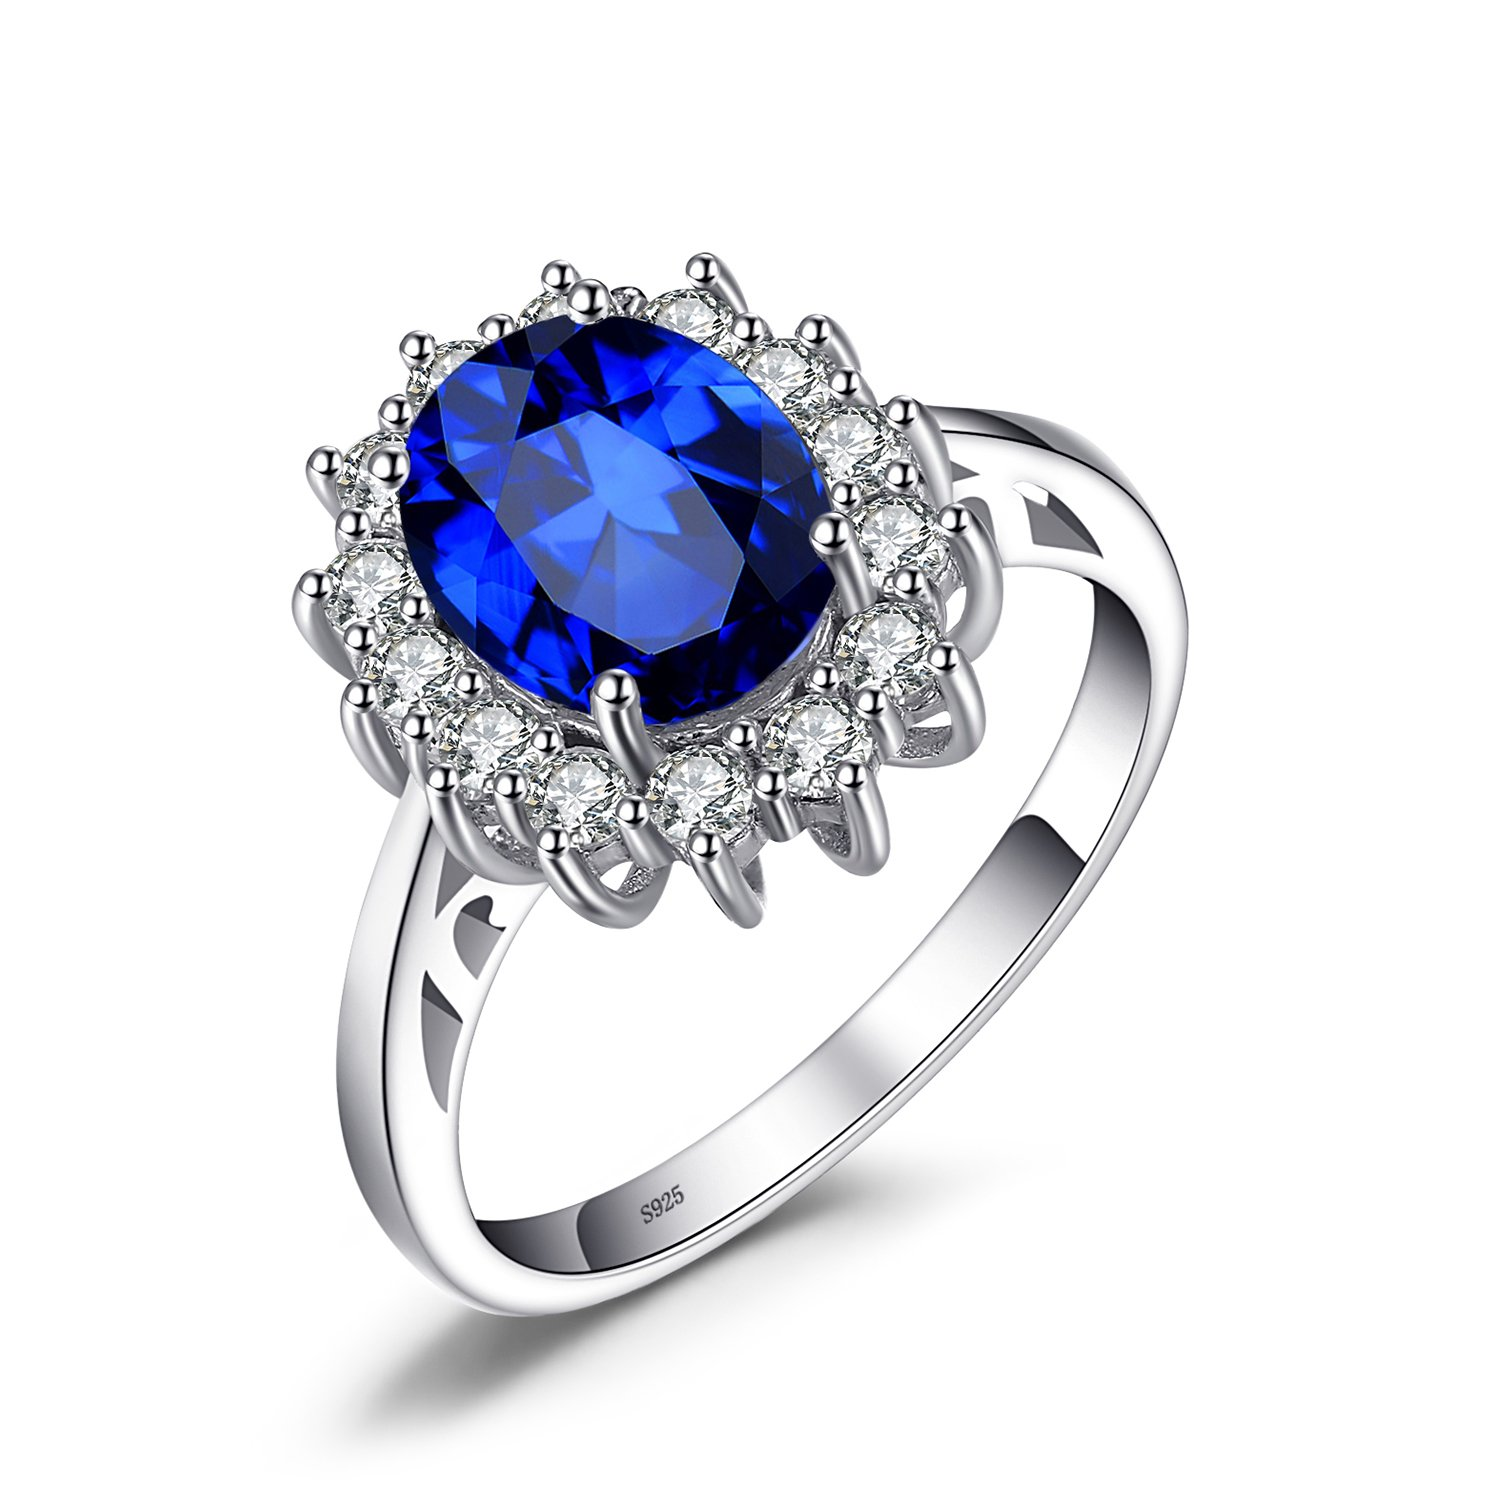 ring diana dp middleton com sapphire sterling jewelrypalace princess saffire amazon silver kate rings created blue engagement